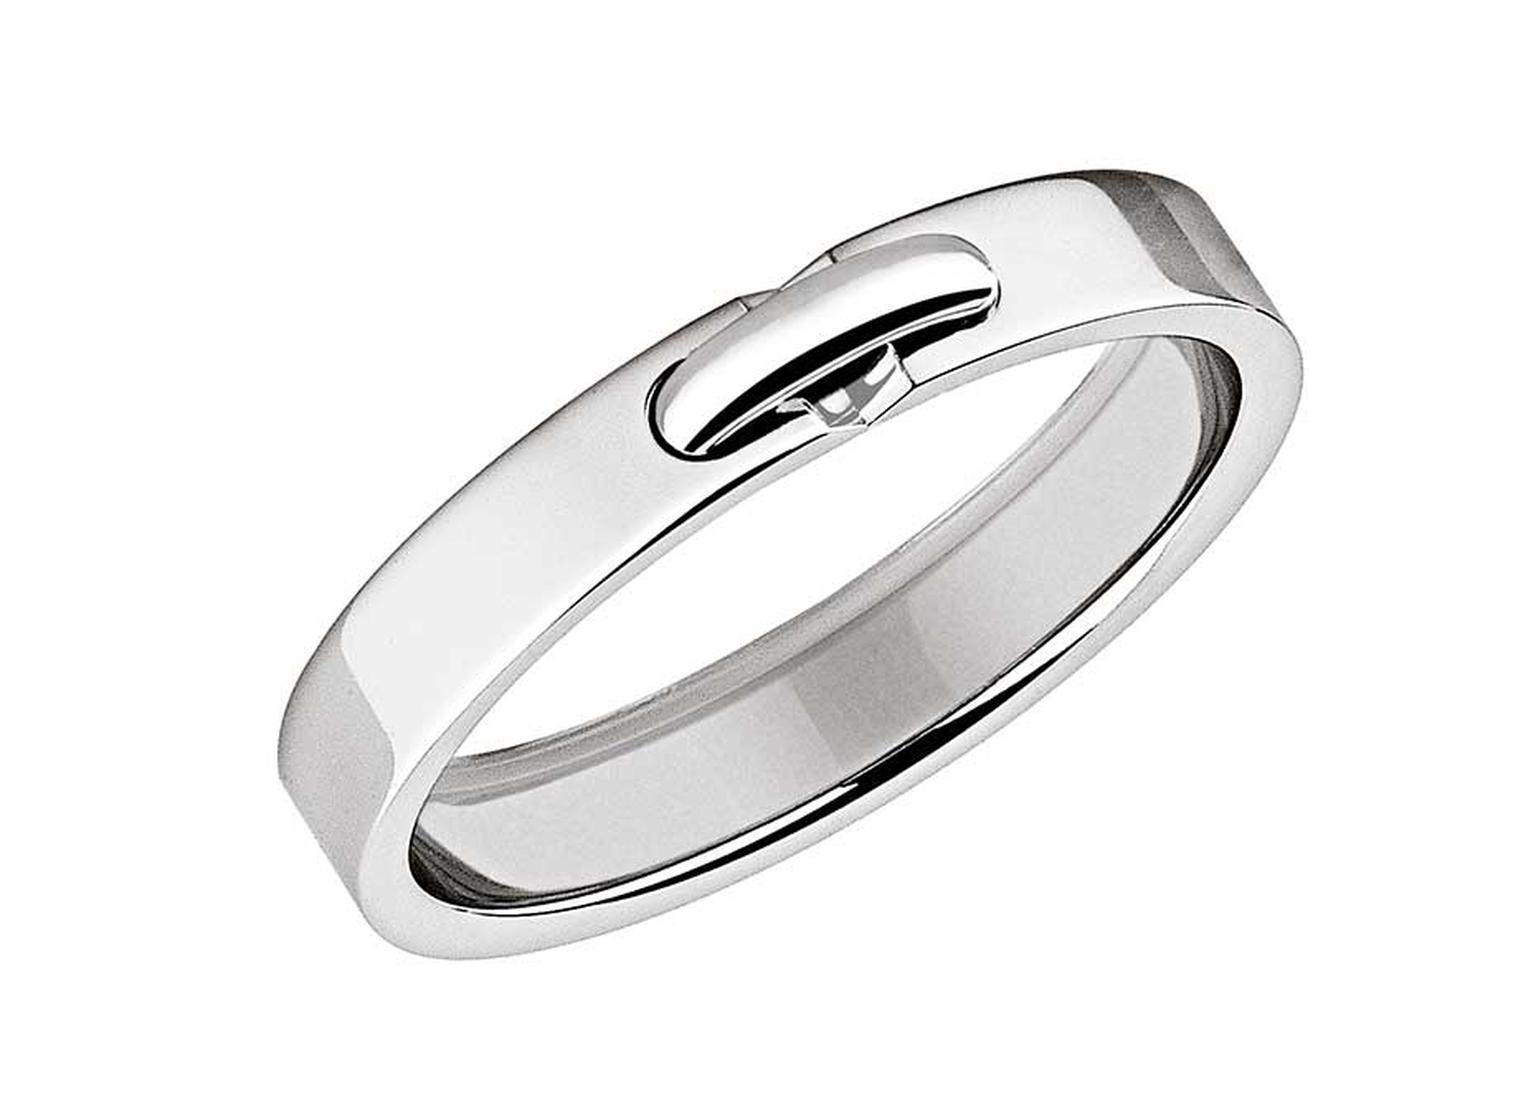 Liens de Chaumet platinum wedding band, XXS model with its platinum link design provides simple elegance.